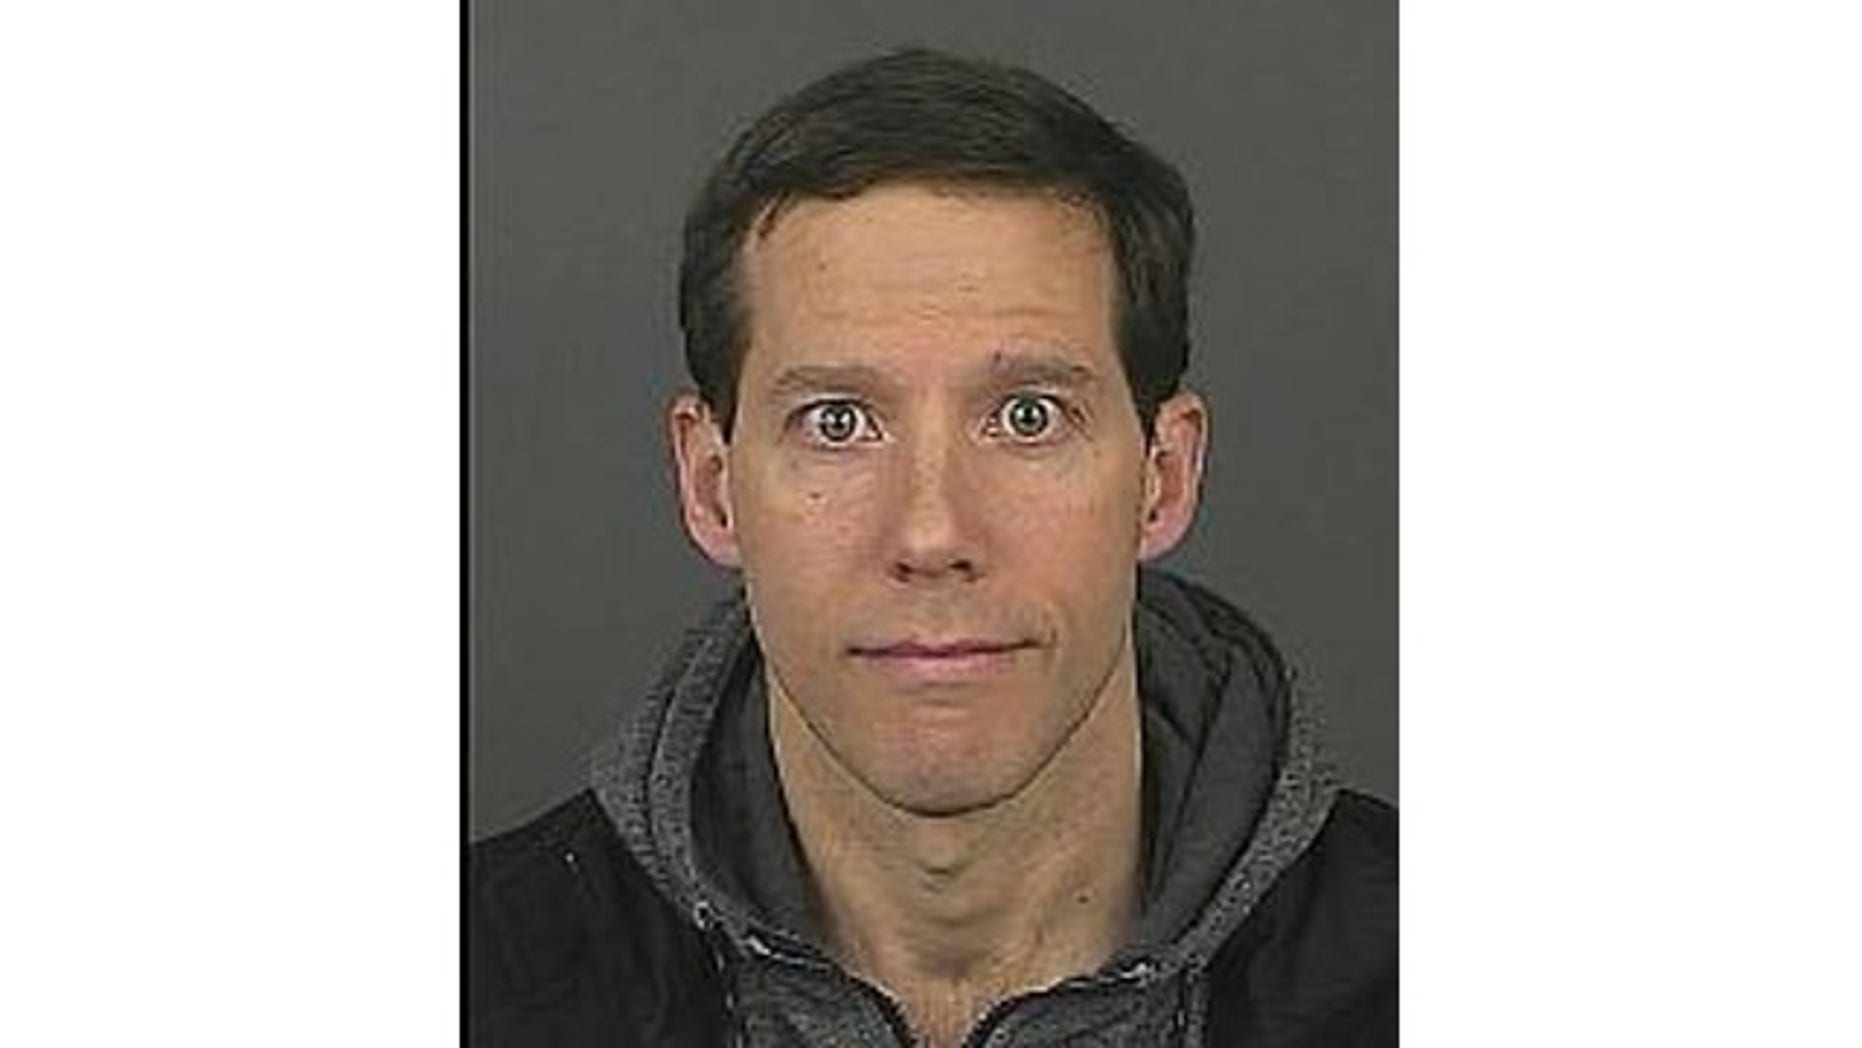 Charges Against Aron Ralston Dropped: Domestic Violence Charges Against Hiker Who Inspired '127